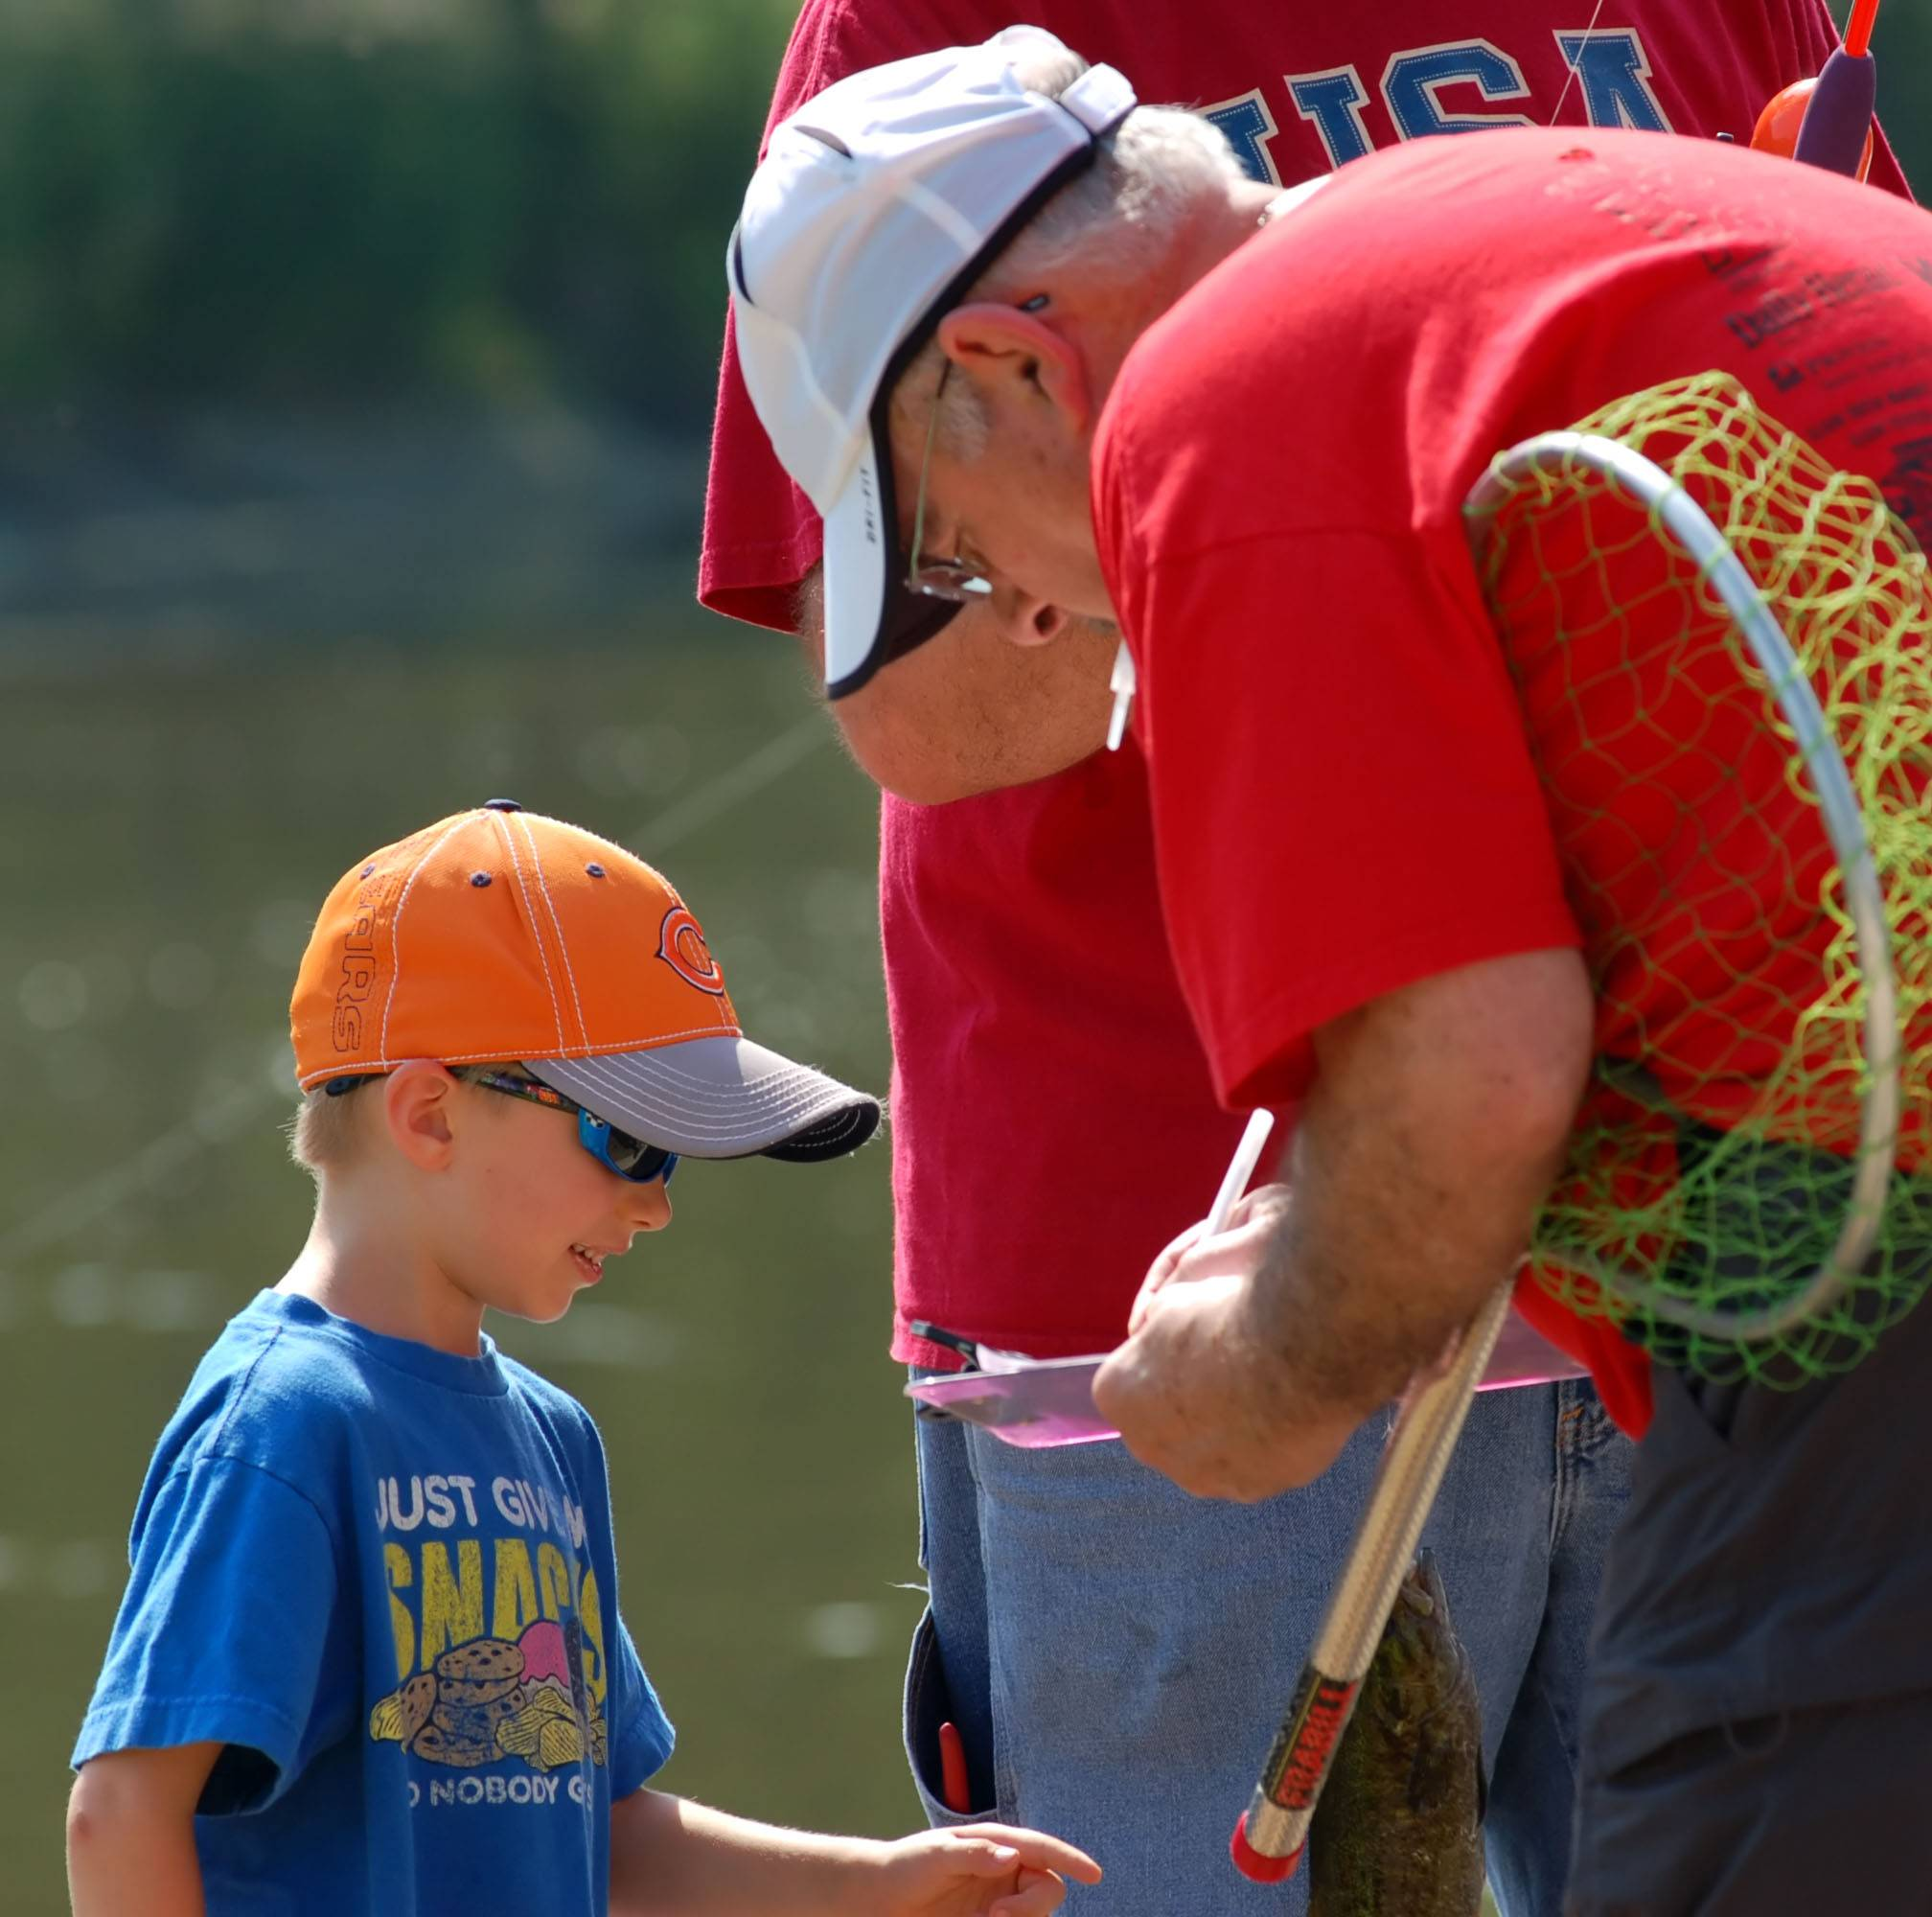 Caleb Williams, 5, of Elgin, caught a 7-ounce, 10-inch smallmouth bass at a previous Fish for Fun event in Elgin. Caleb was with his father, Justin Williams.